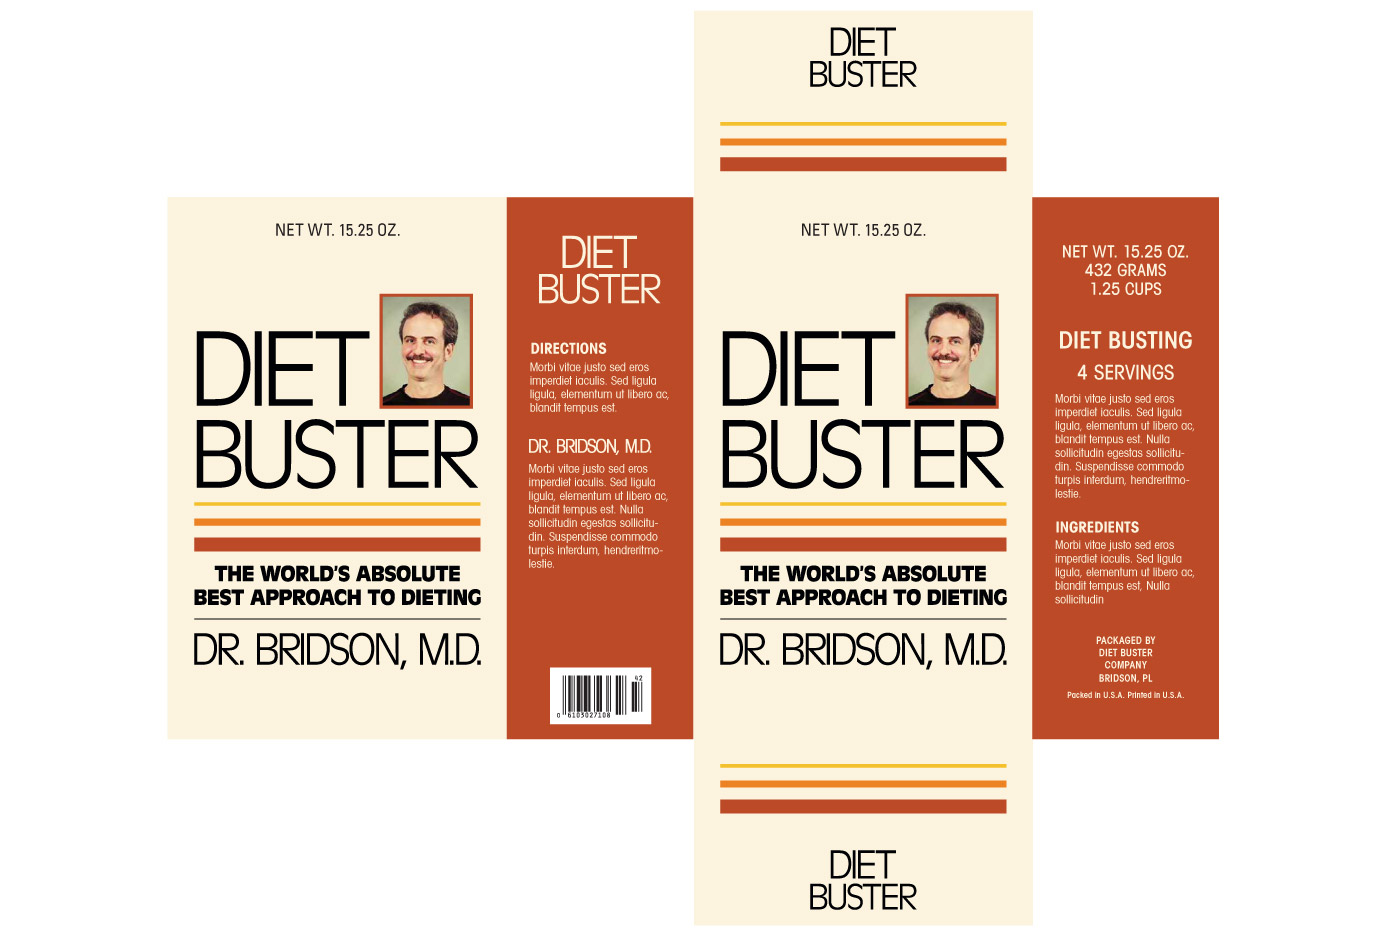 diet buster box graphic 2